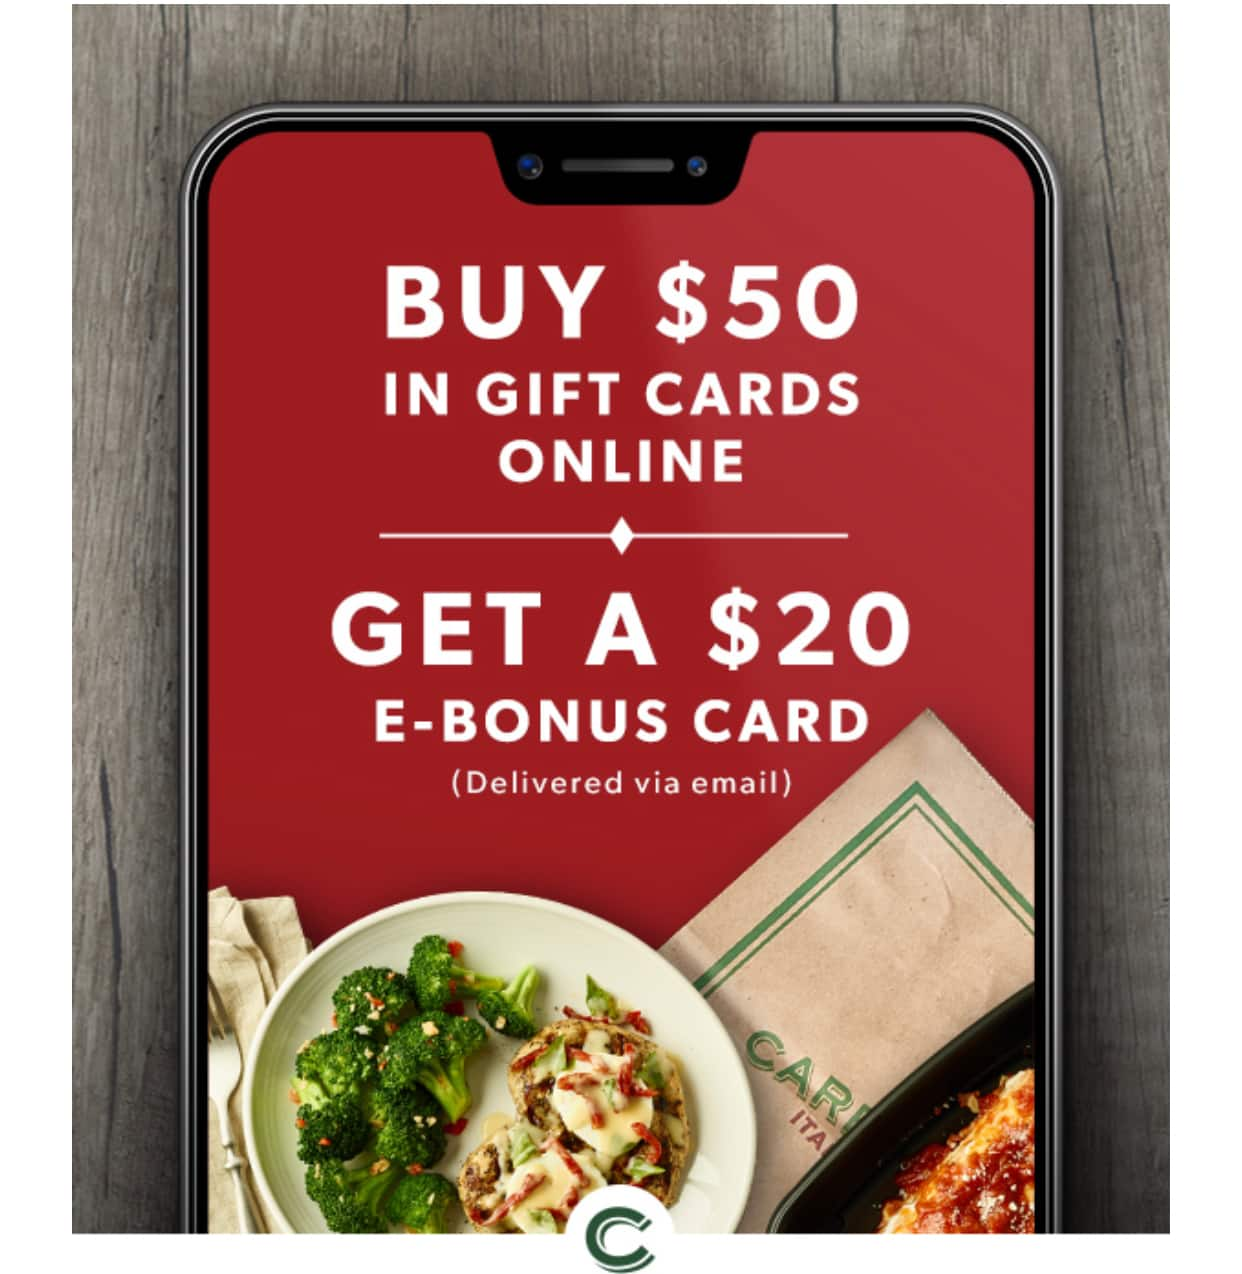 Carrabba's: Buy $50 in gift cards, get $20 on an e-bonus card free